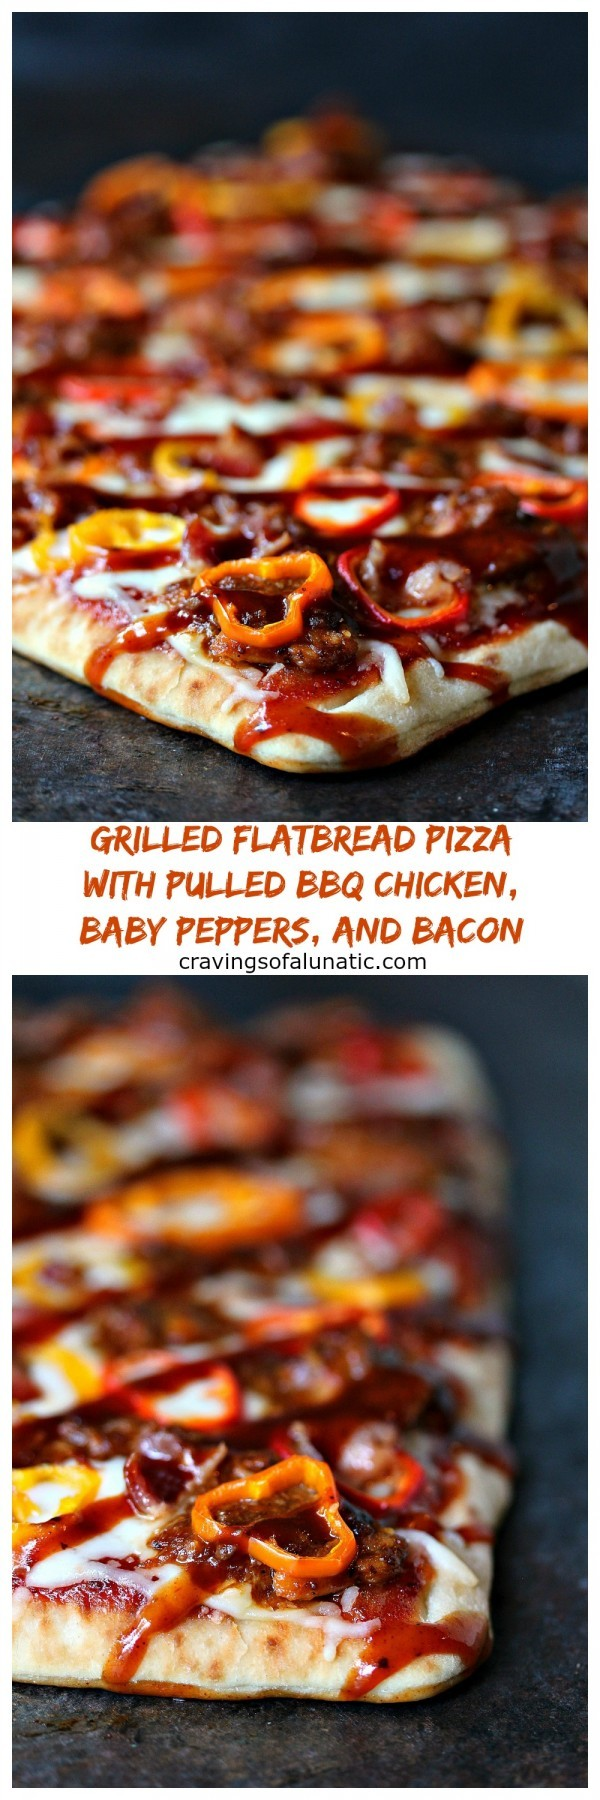 Grilled Flatbread Pizza with Pulled BBQ Chicken, Baby Peppers, and Bacon from cravingsofalunatic.com- This flatbread pizza is topped with pulled BBQ chicken, sliced baby peppers, and pieces of bacon, then grilled to perfection. Once it comes off the grill drizzle it with more BBQ sauce and dive in! @CravingsLunatic